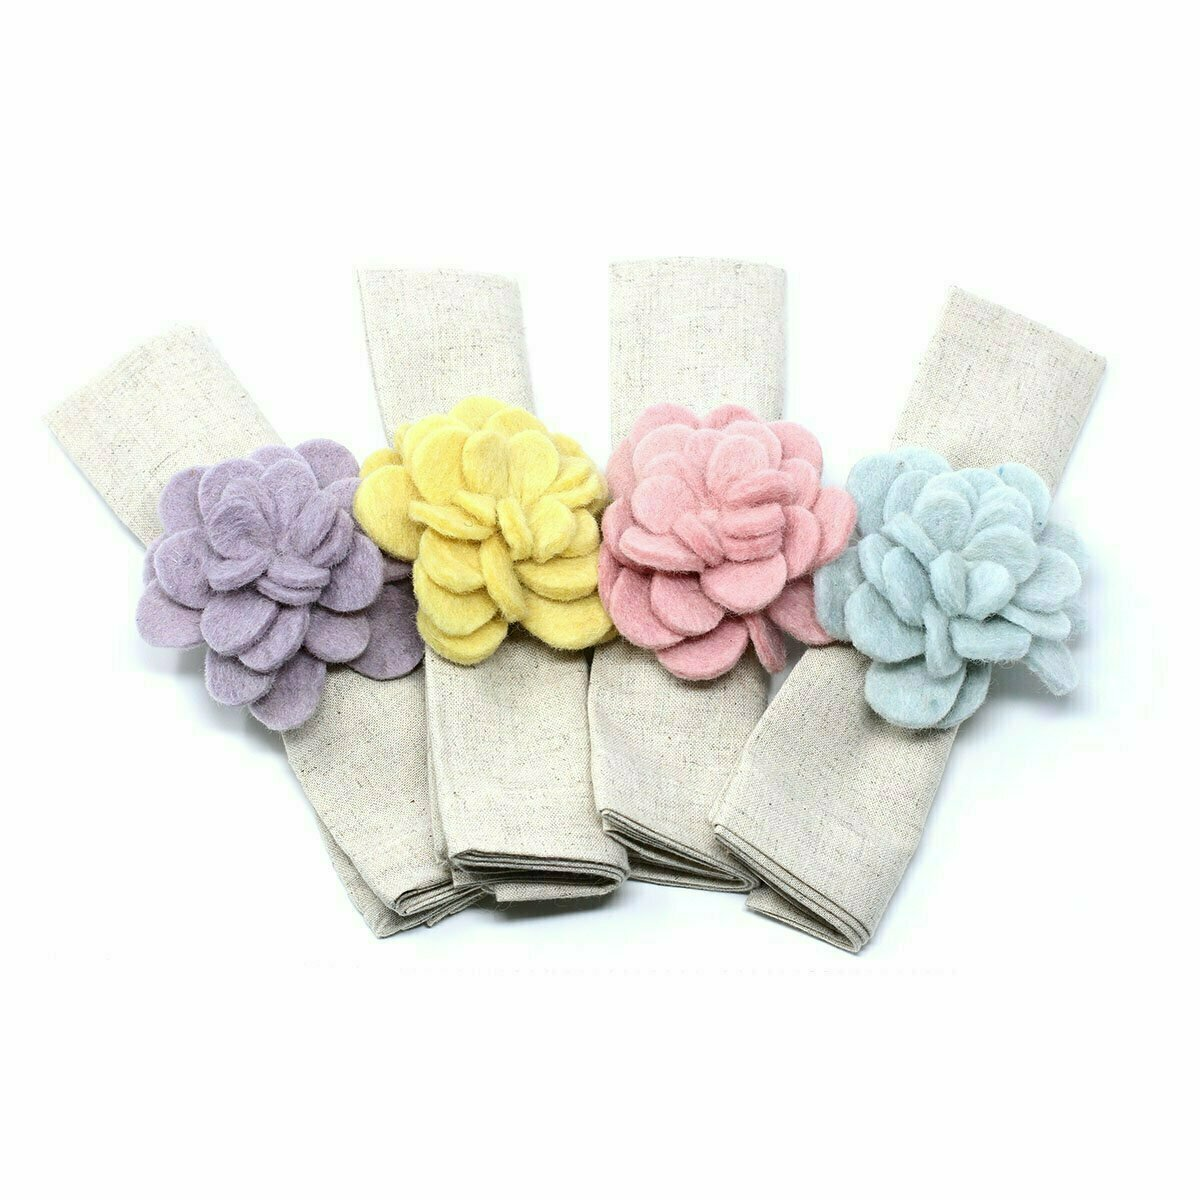 Hand-felted Zinnia Napkin Rings, Set of Four Colors - Global Groove (T)